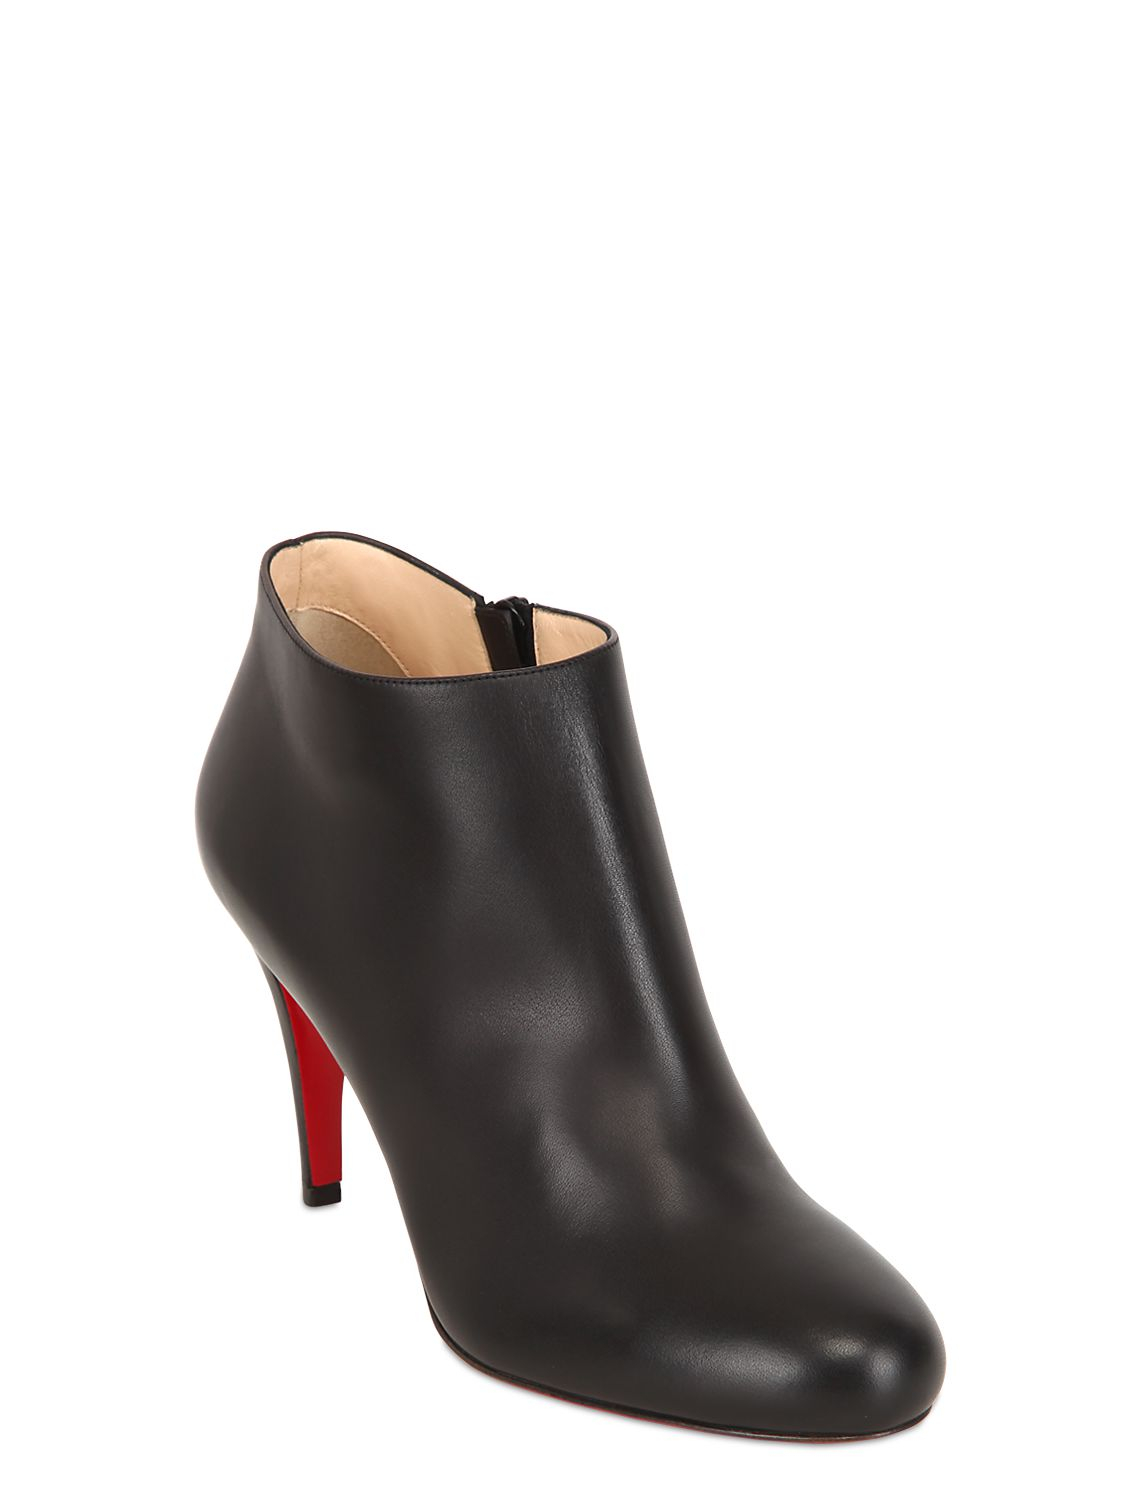 christian louboutin 85mm calf leather ankle boots in